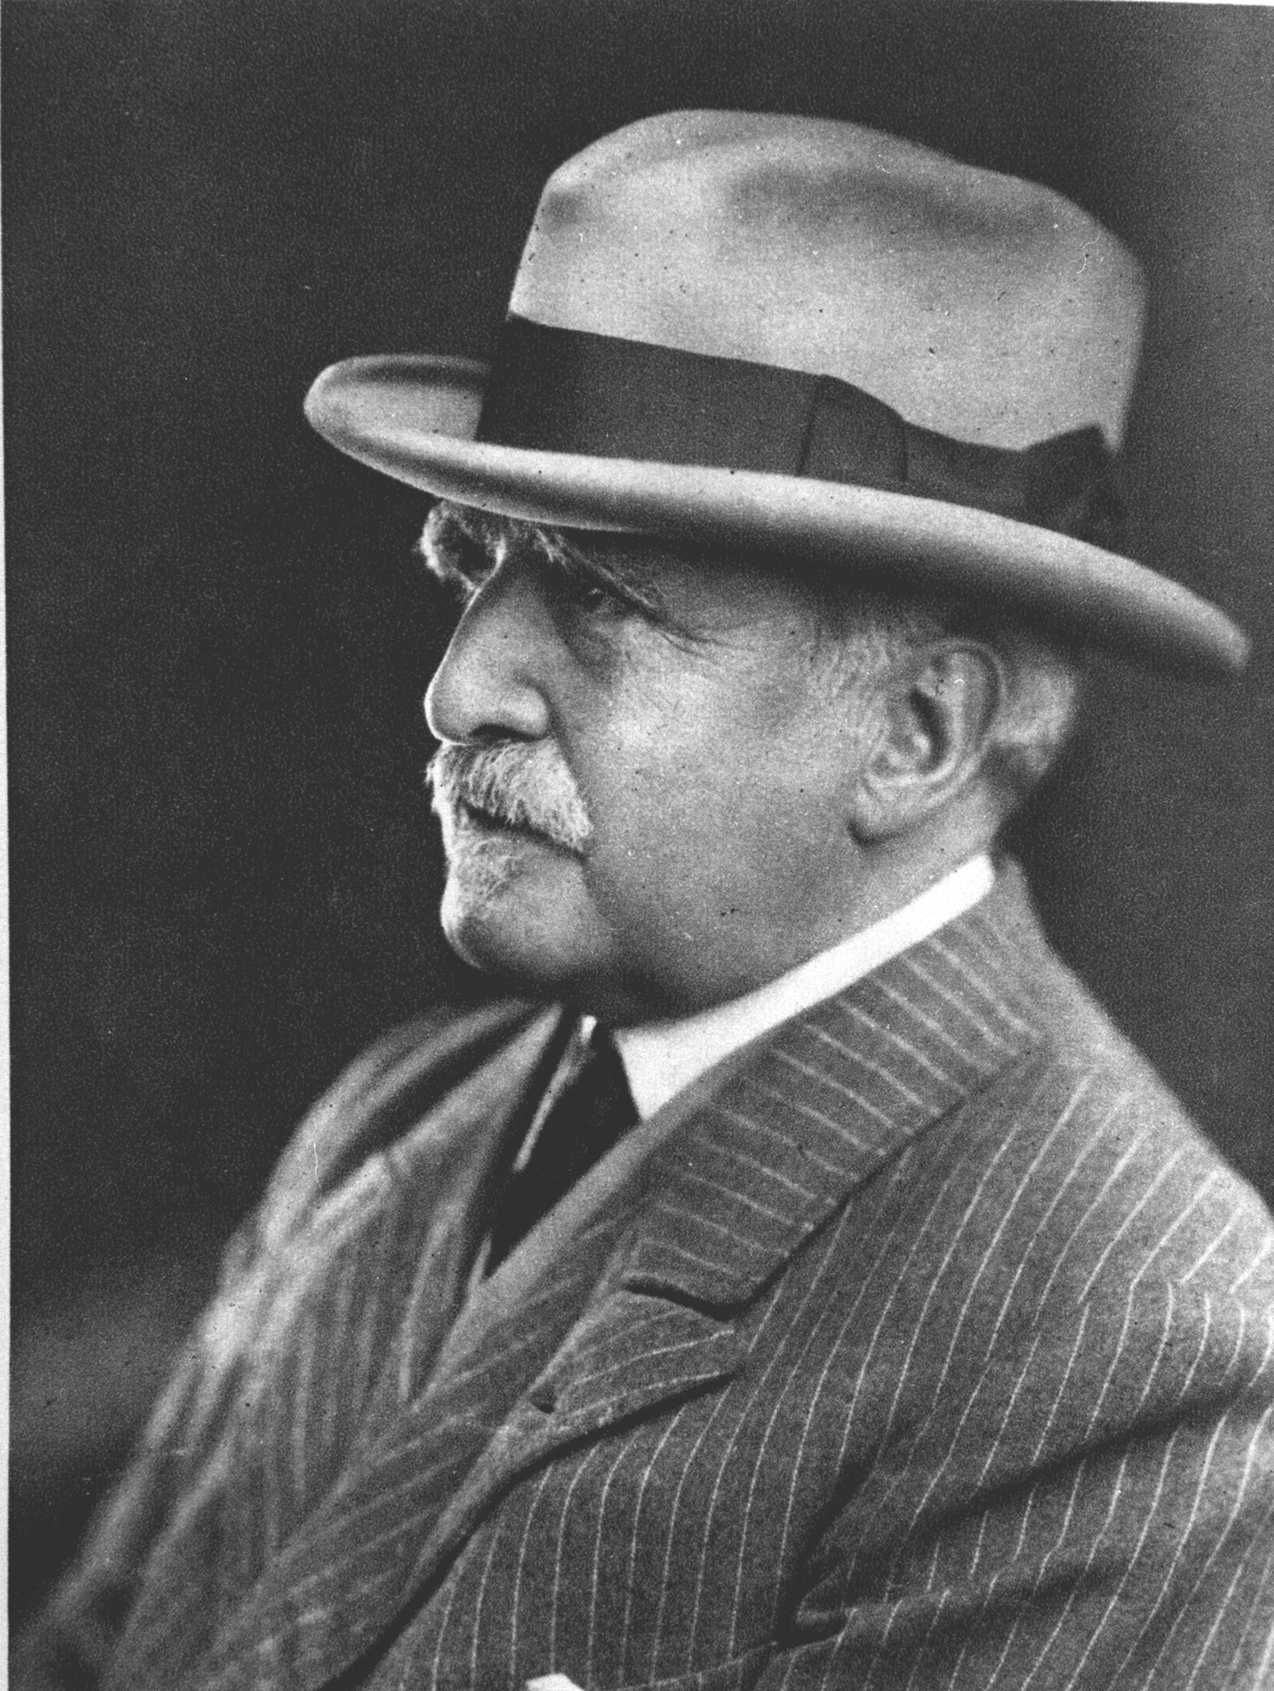 Photograph of Lord Brotherton, 1926